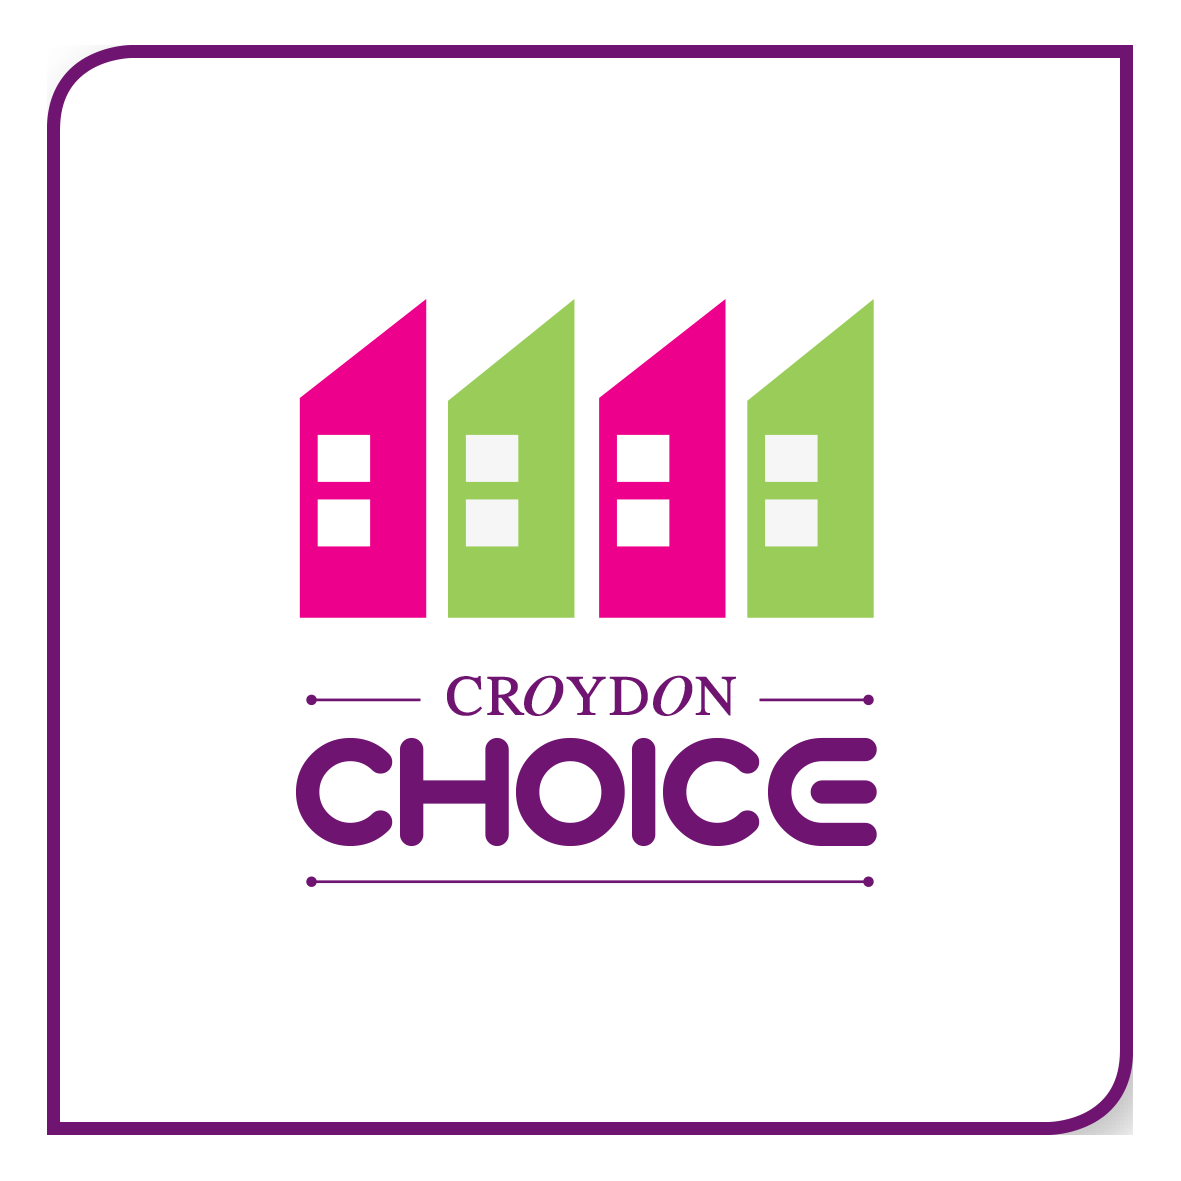 Croydon choice